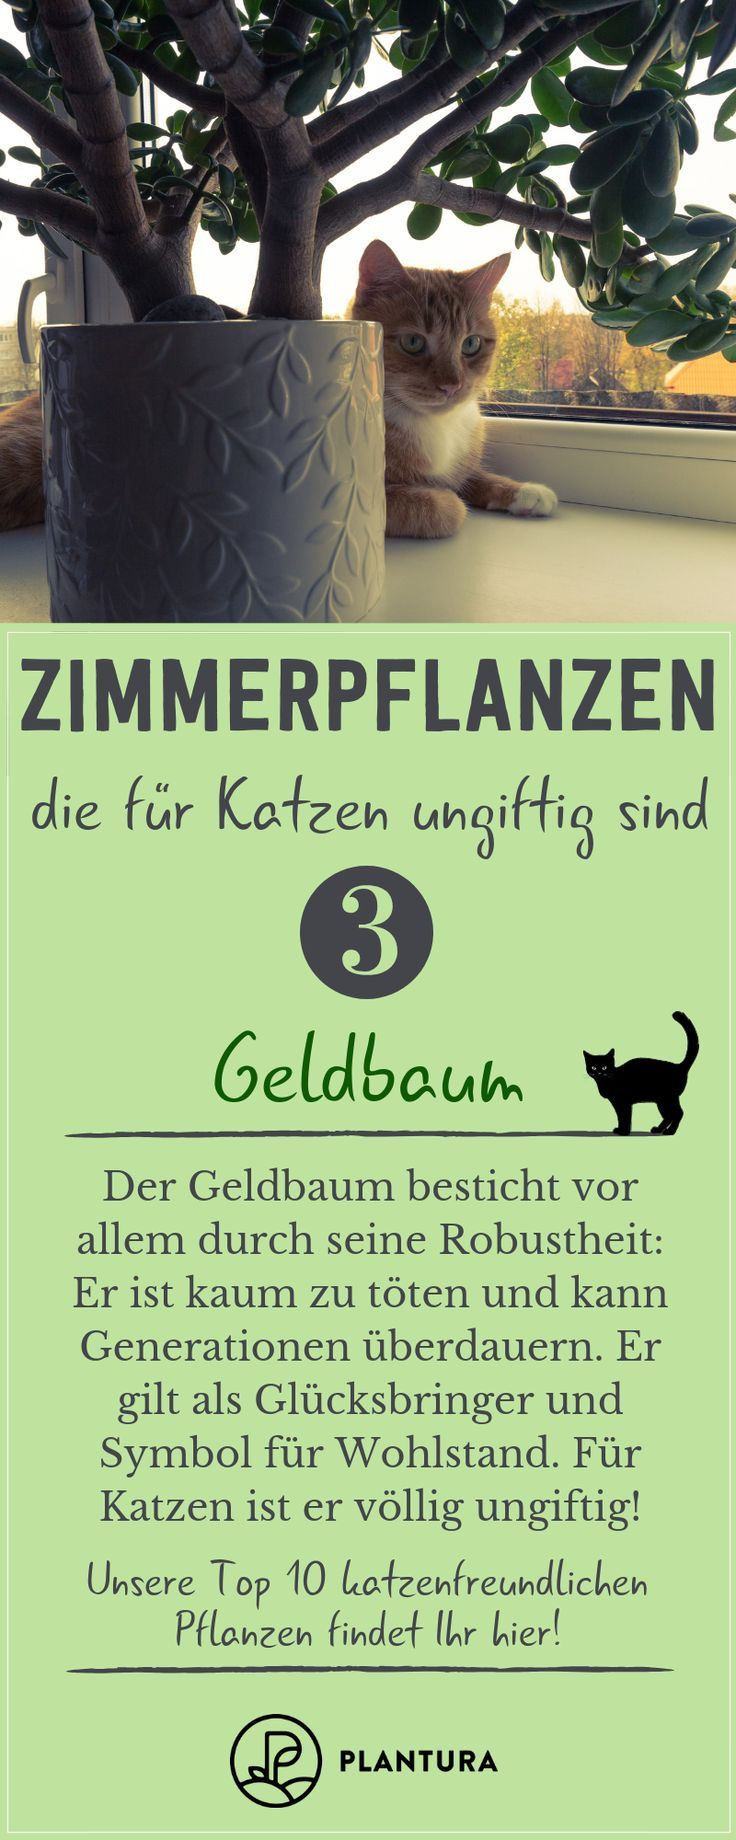 Ungiftige Zimmerpflanzen für Katzen Unsere Top 10 is part of Cat plants, House plants indoor, Houseplants, House plants, Money trees, Foliage plants - Welche Zimmerpflanzen sind ungefährlich für Katzen  Wir stellen 10 Pflanzen vor, die ungiftig und damit perfekt für Stubentiger geeignet sind